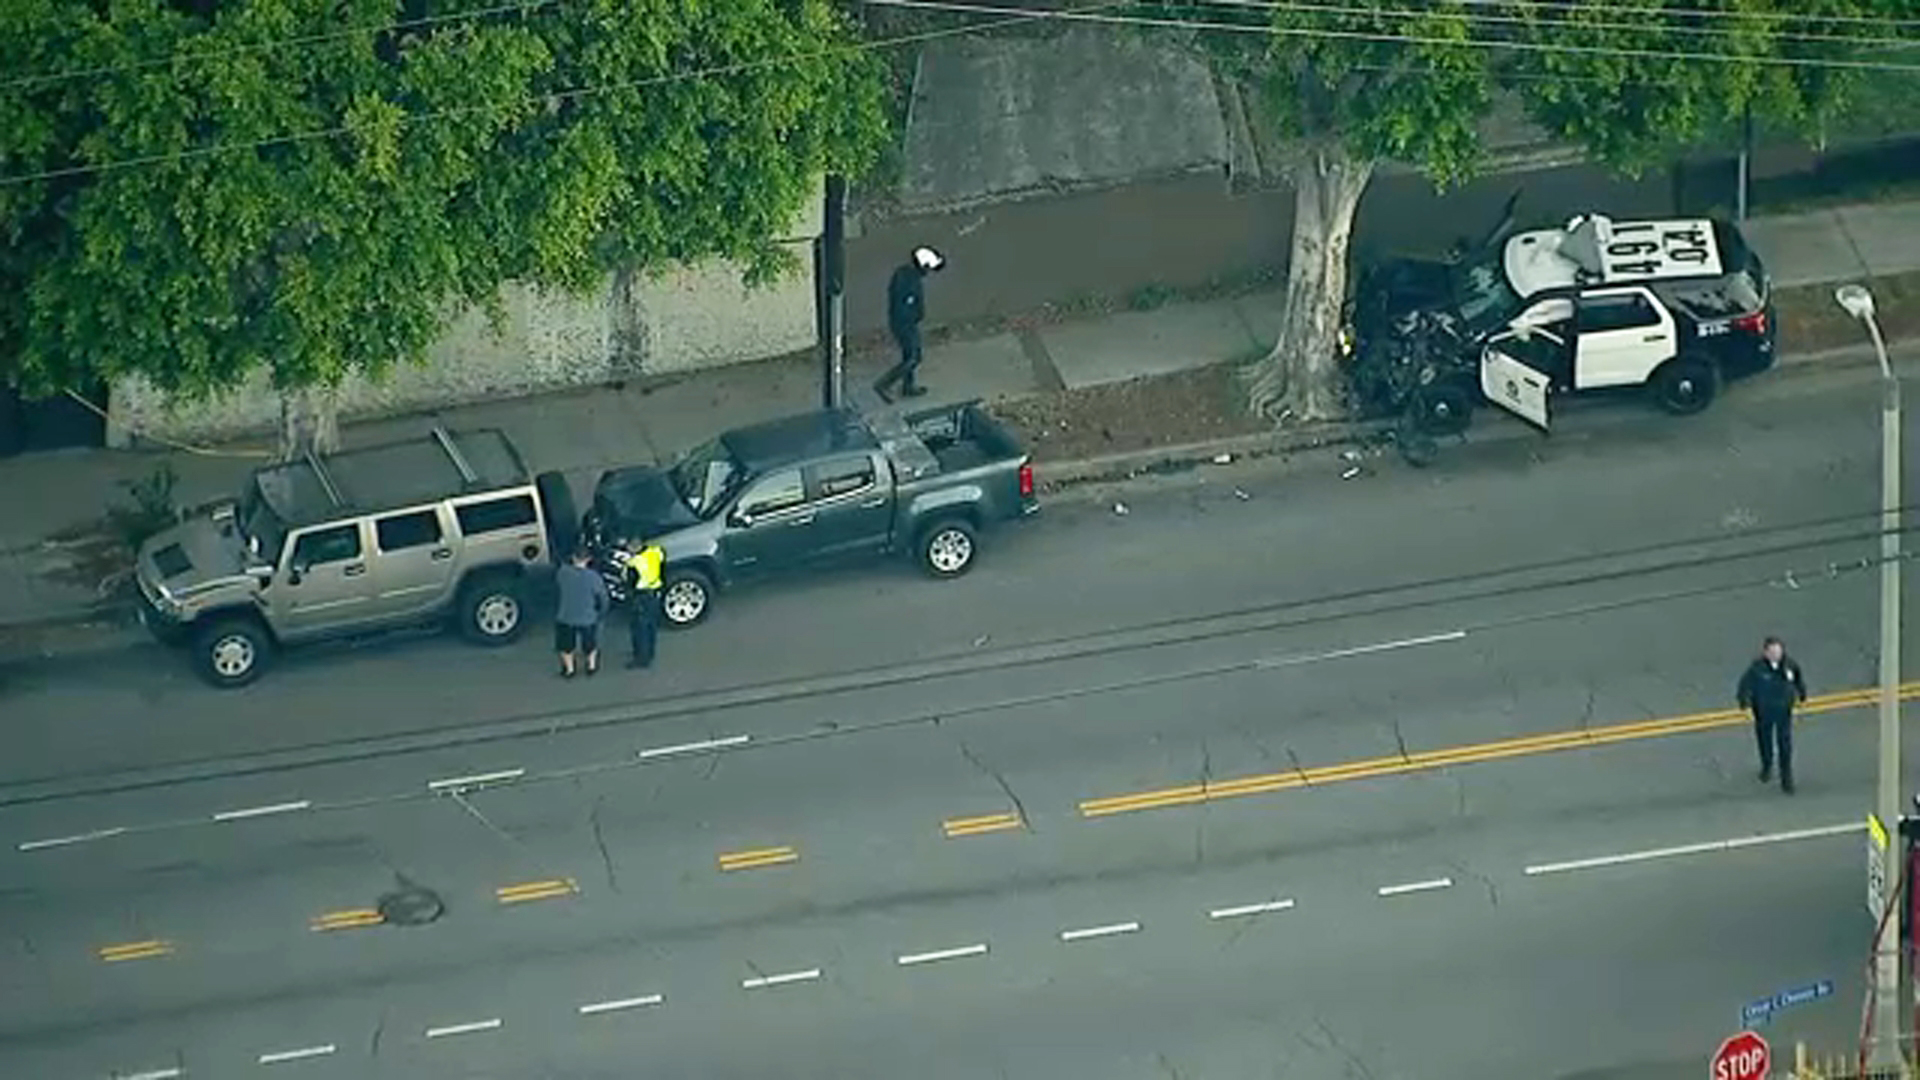 Authorities are at the scene of a crash in Boyle Heights that left two Los Angeles Police Department officers injured on Thursday, Dec. 27, 2018.